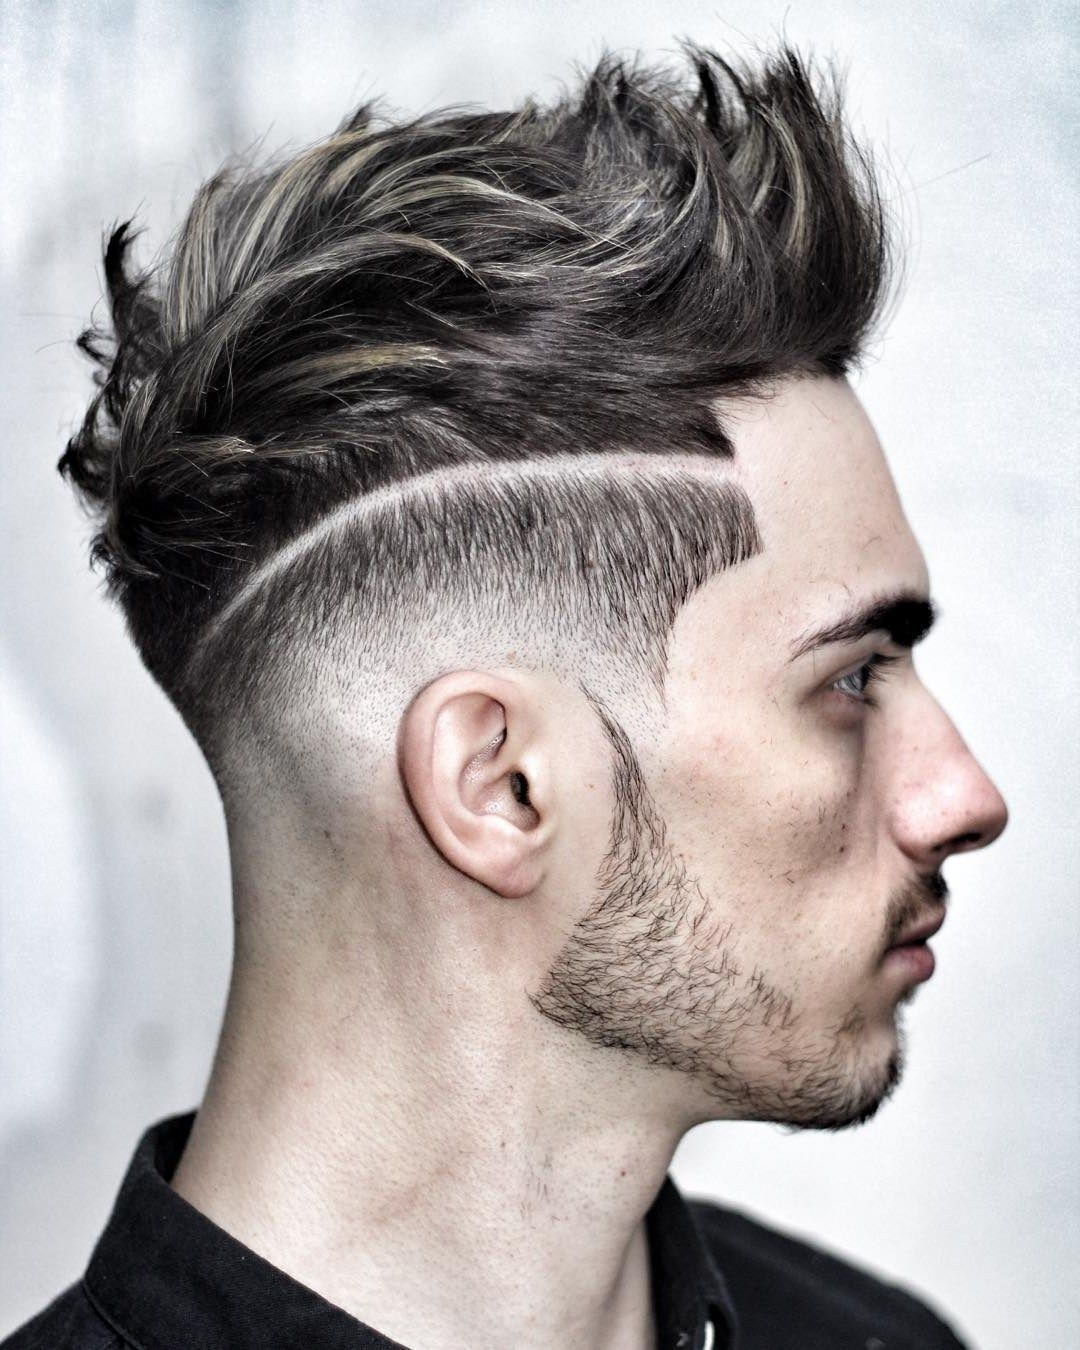 Haircut for men  haircut trends for men spikes hairstyles men latest men